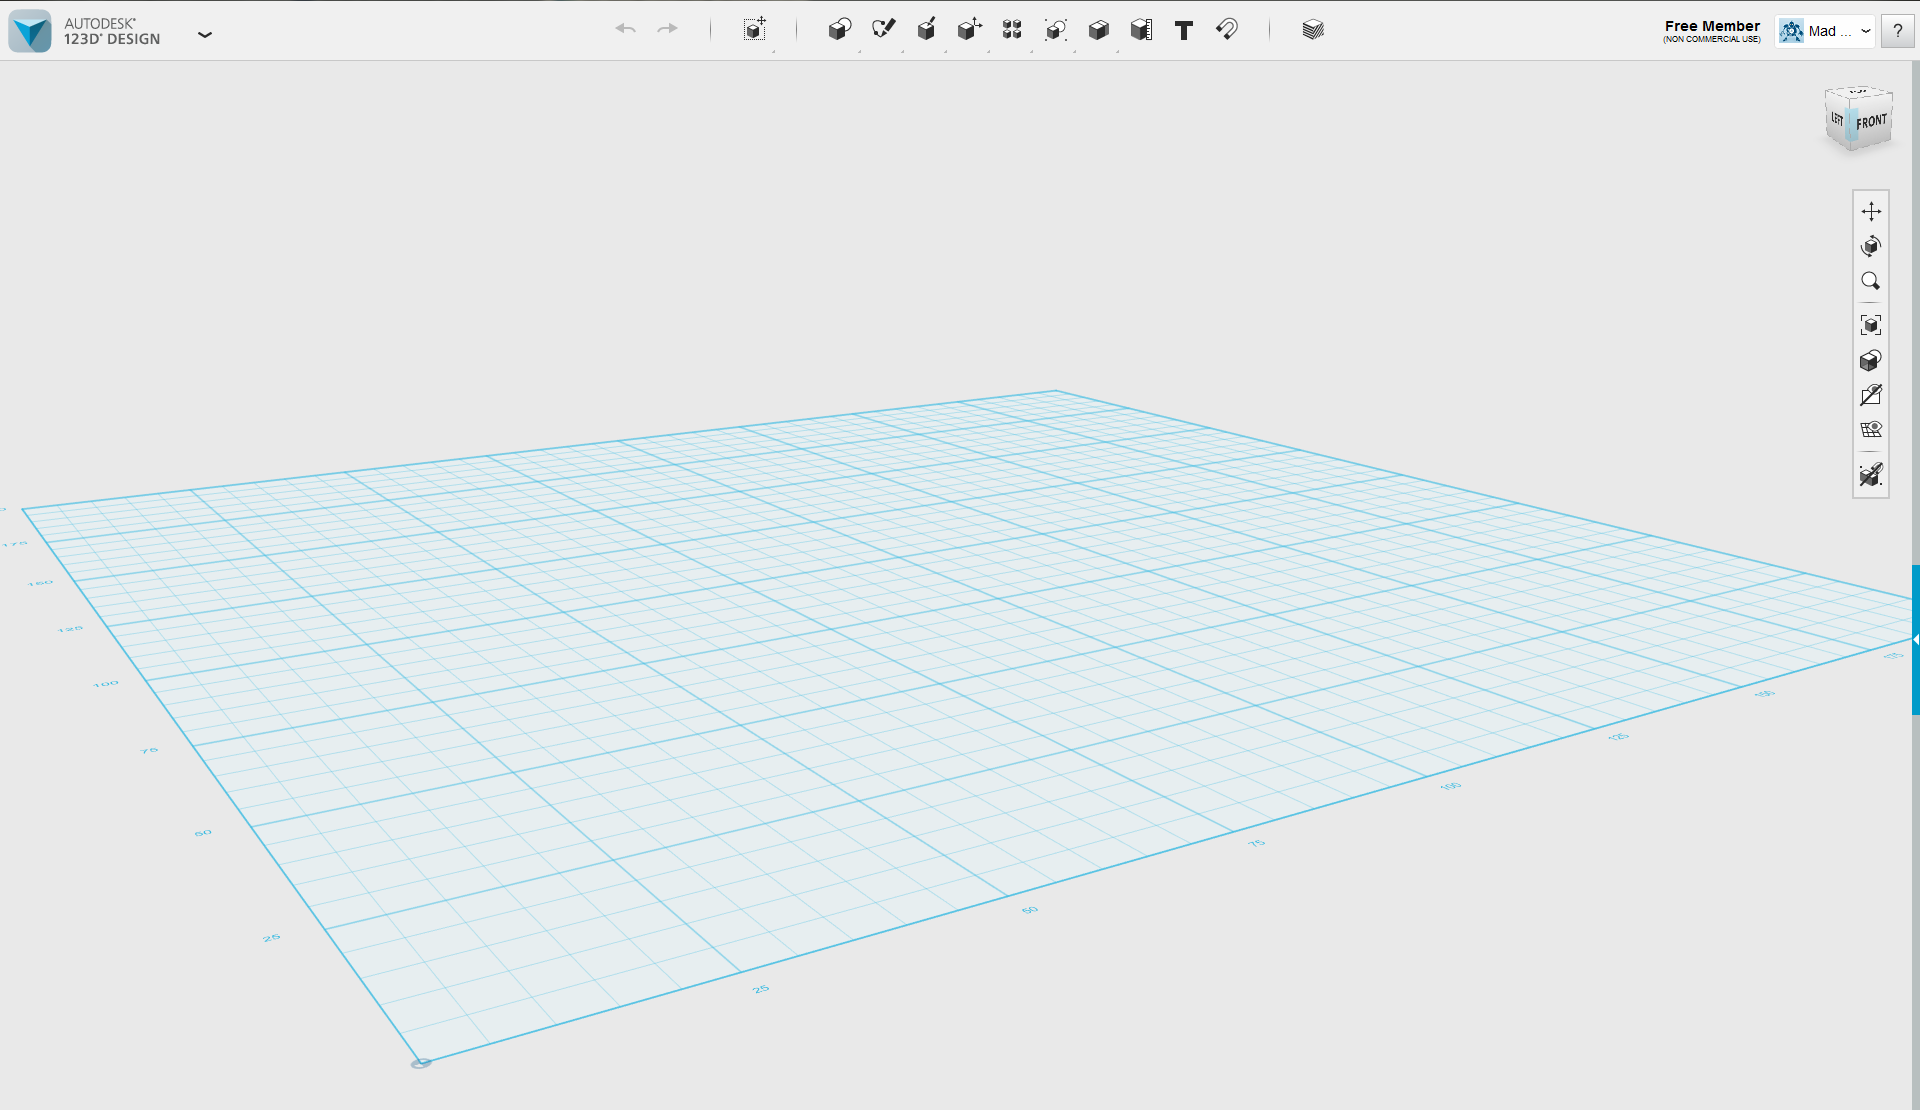 What Is Autodesk 123D Design and Why Should You (Not) Use It?